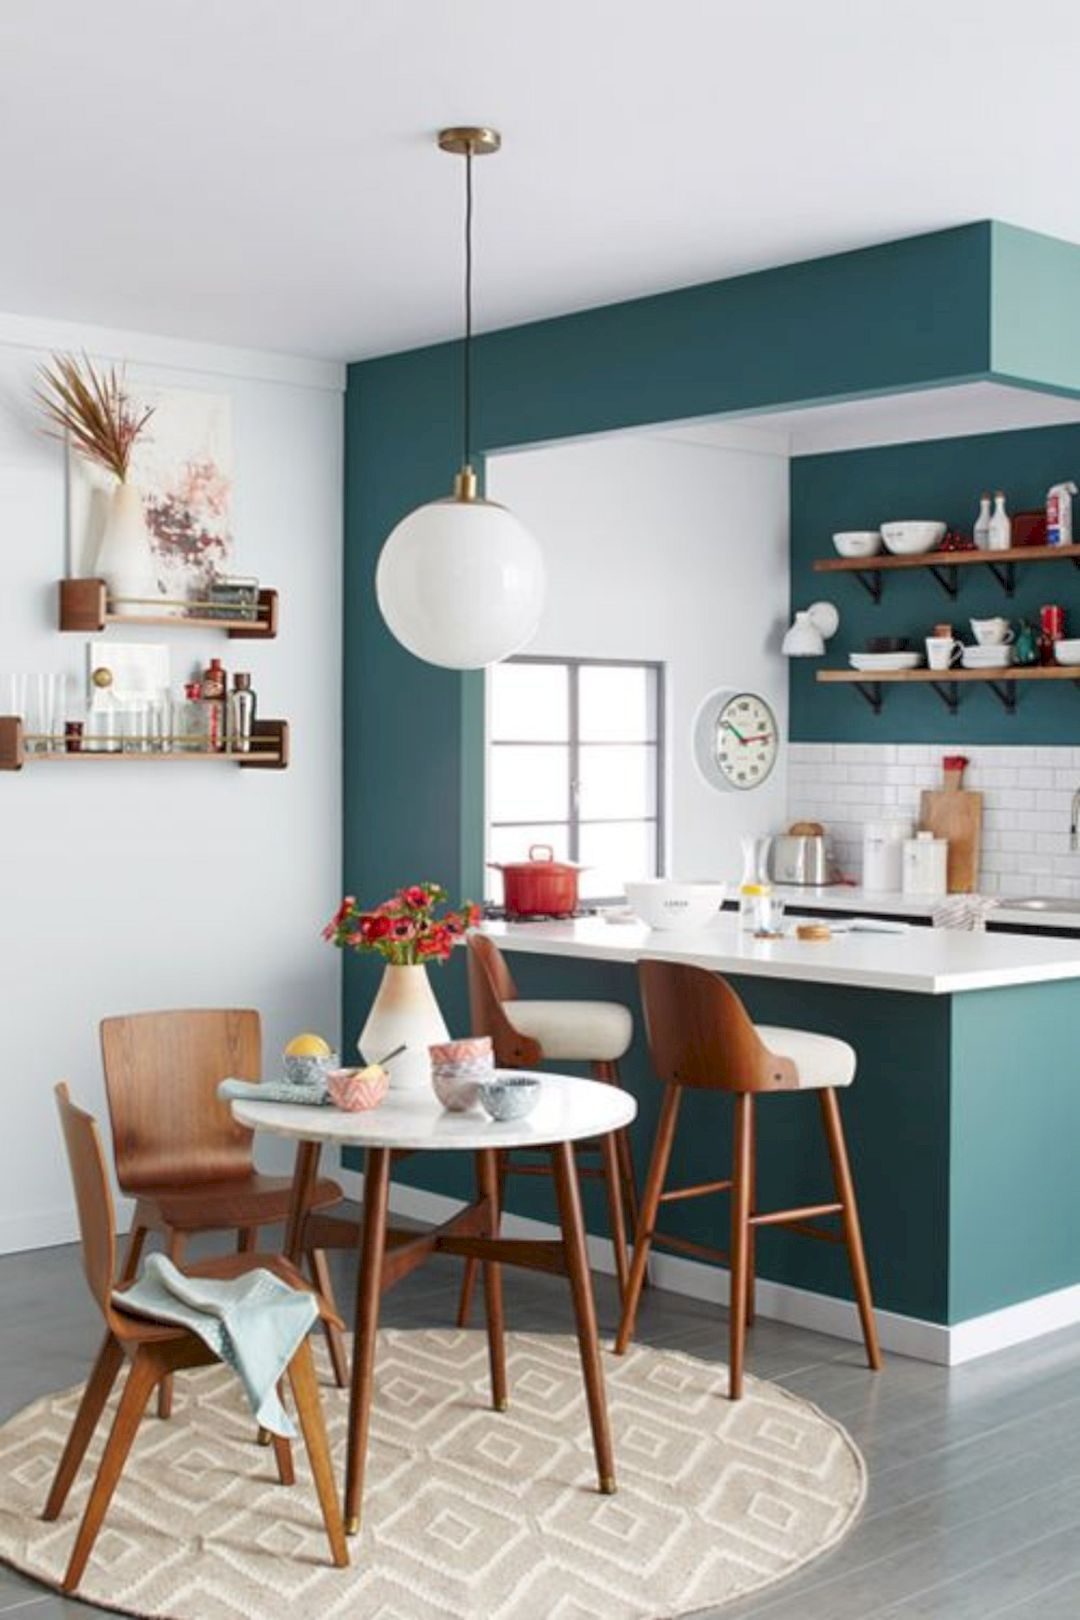 A Guide To Efficient Small Kitchen Design For Apartment Dining